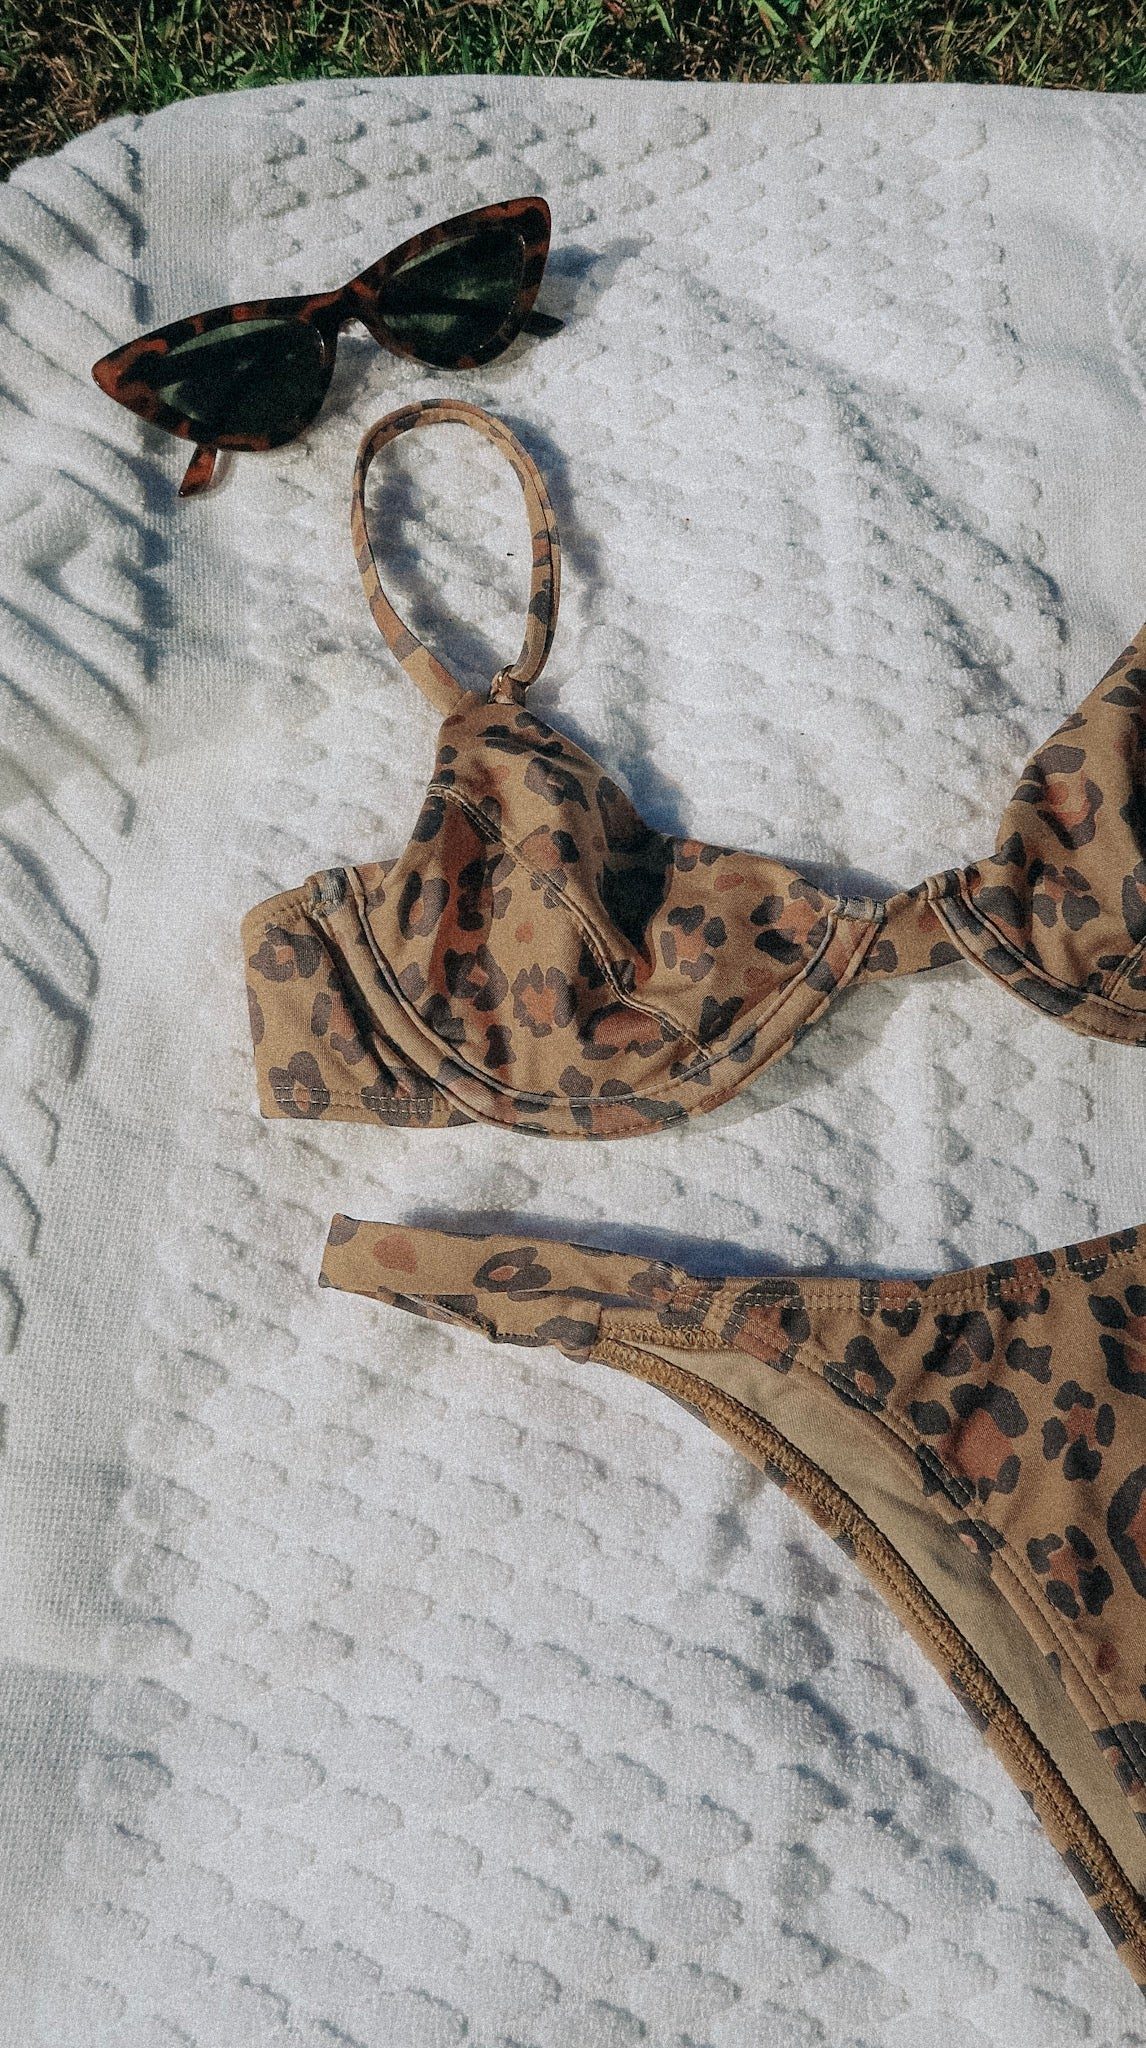 Leopard print bikini bottoms, featuring an 80's style high leg and brazilian cut on the booty. Luxury swimwear for a better world, with better tan lines.